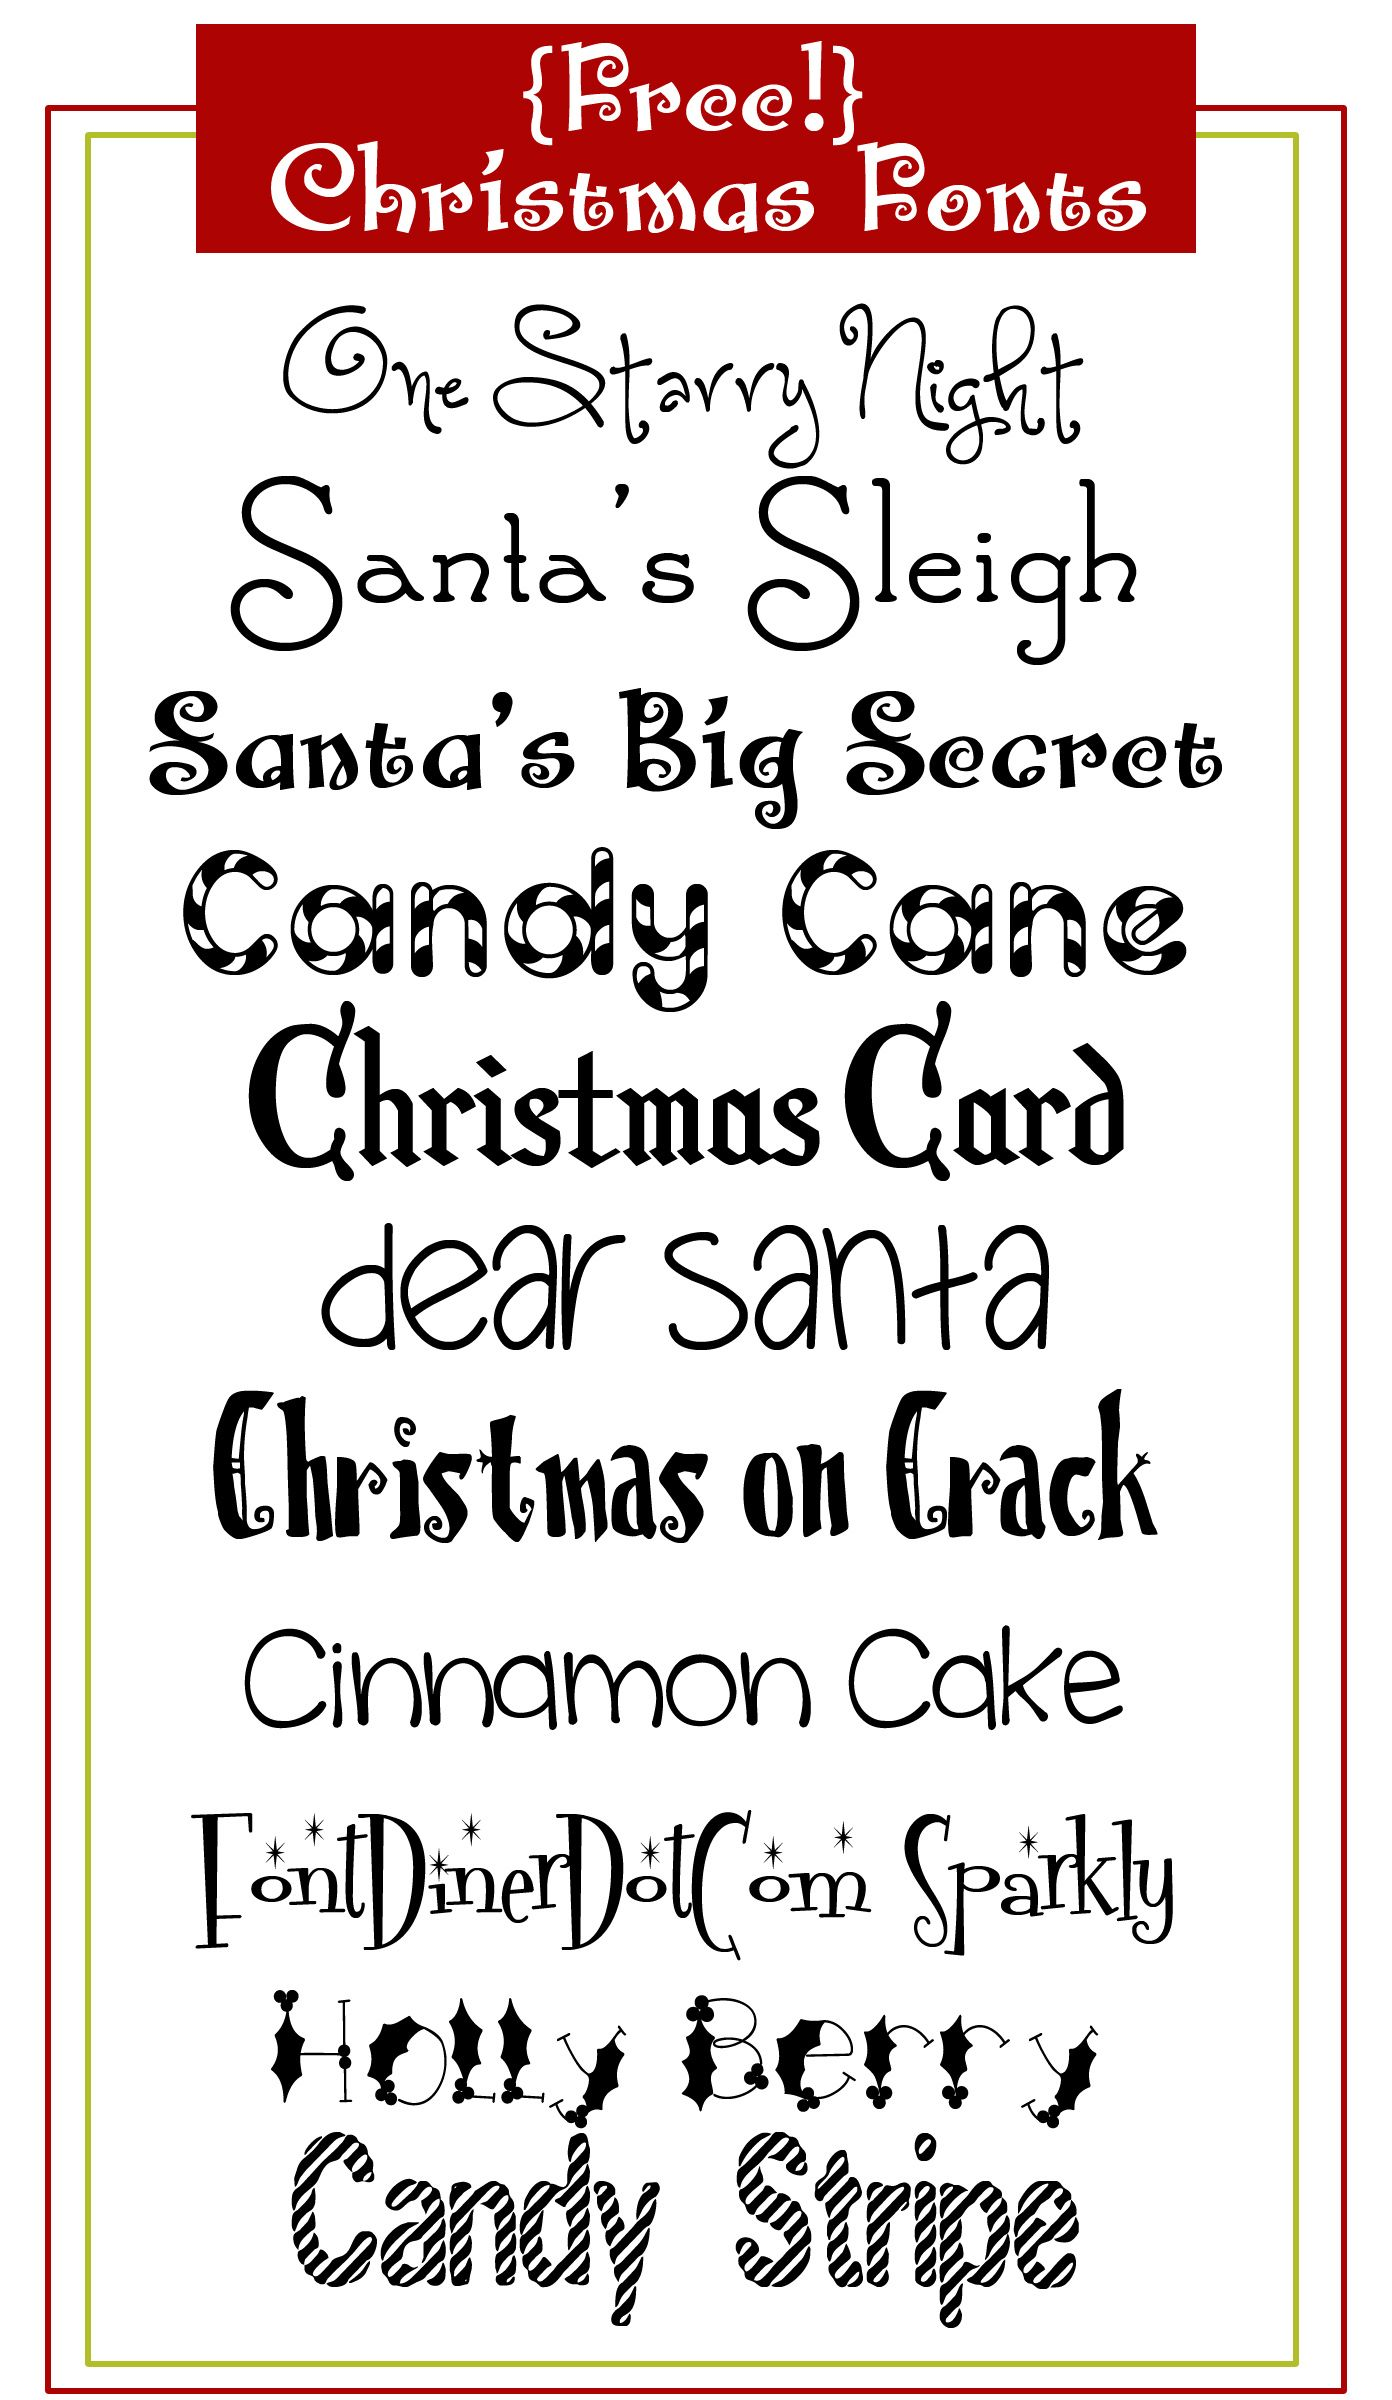 free christmas fonts use these to create abc sorts for preschoolers and word cards for the writing center - Christmas Fonts Free